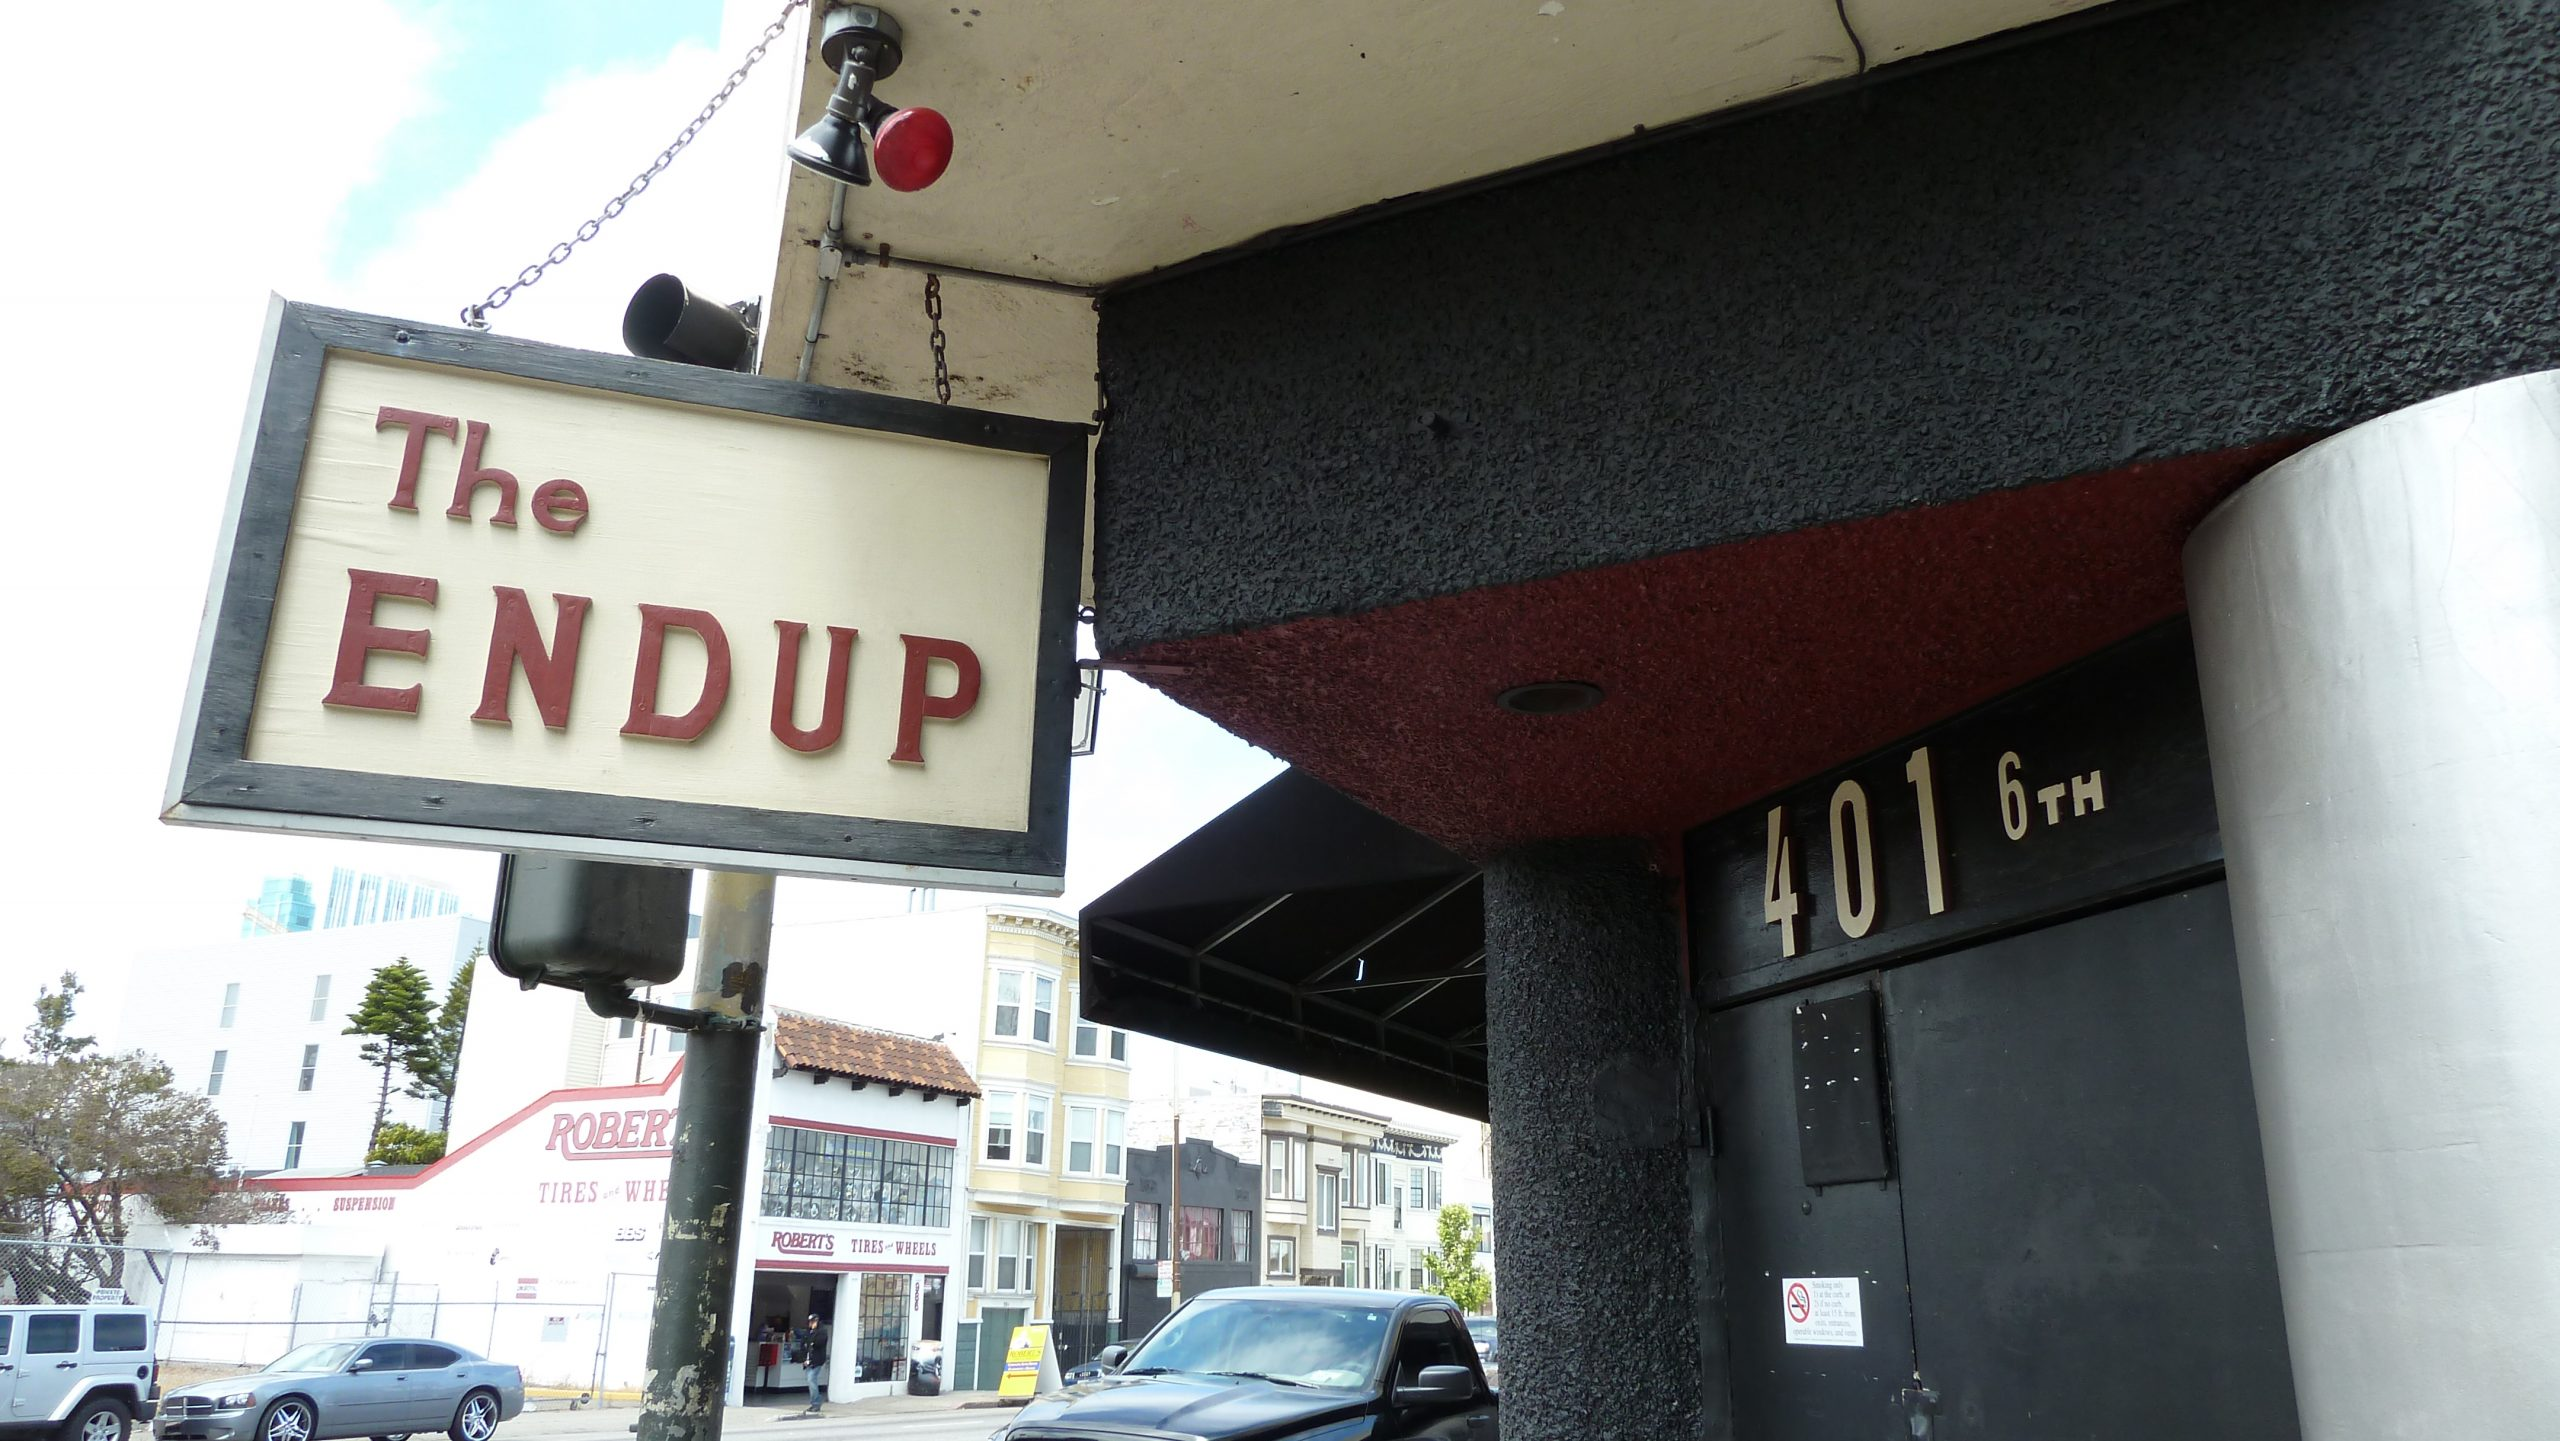 The Endup exterior with sign